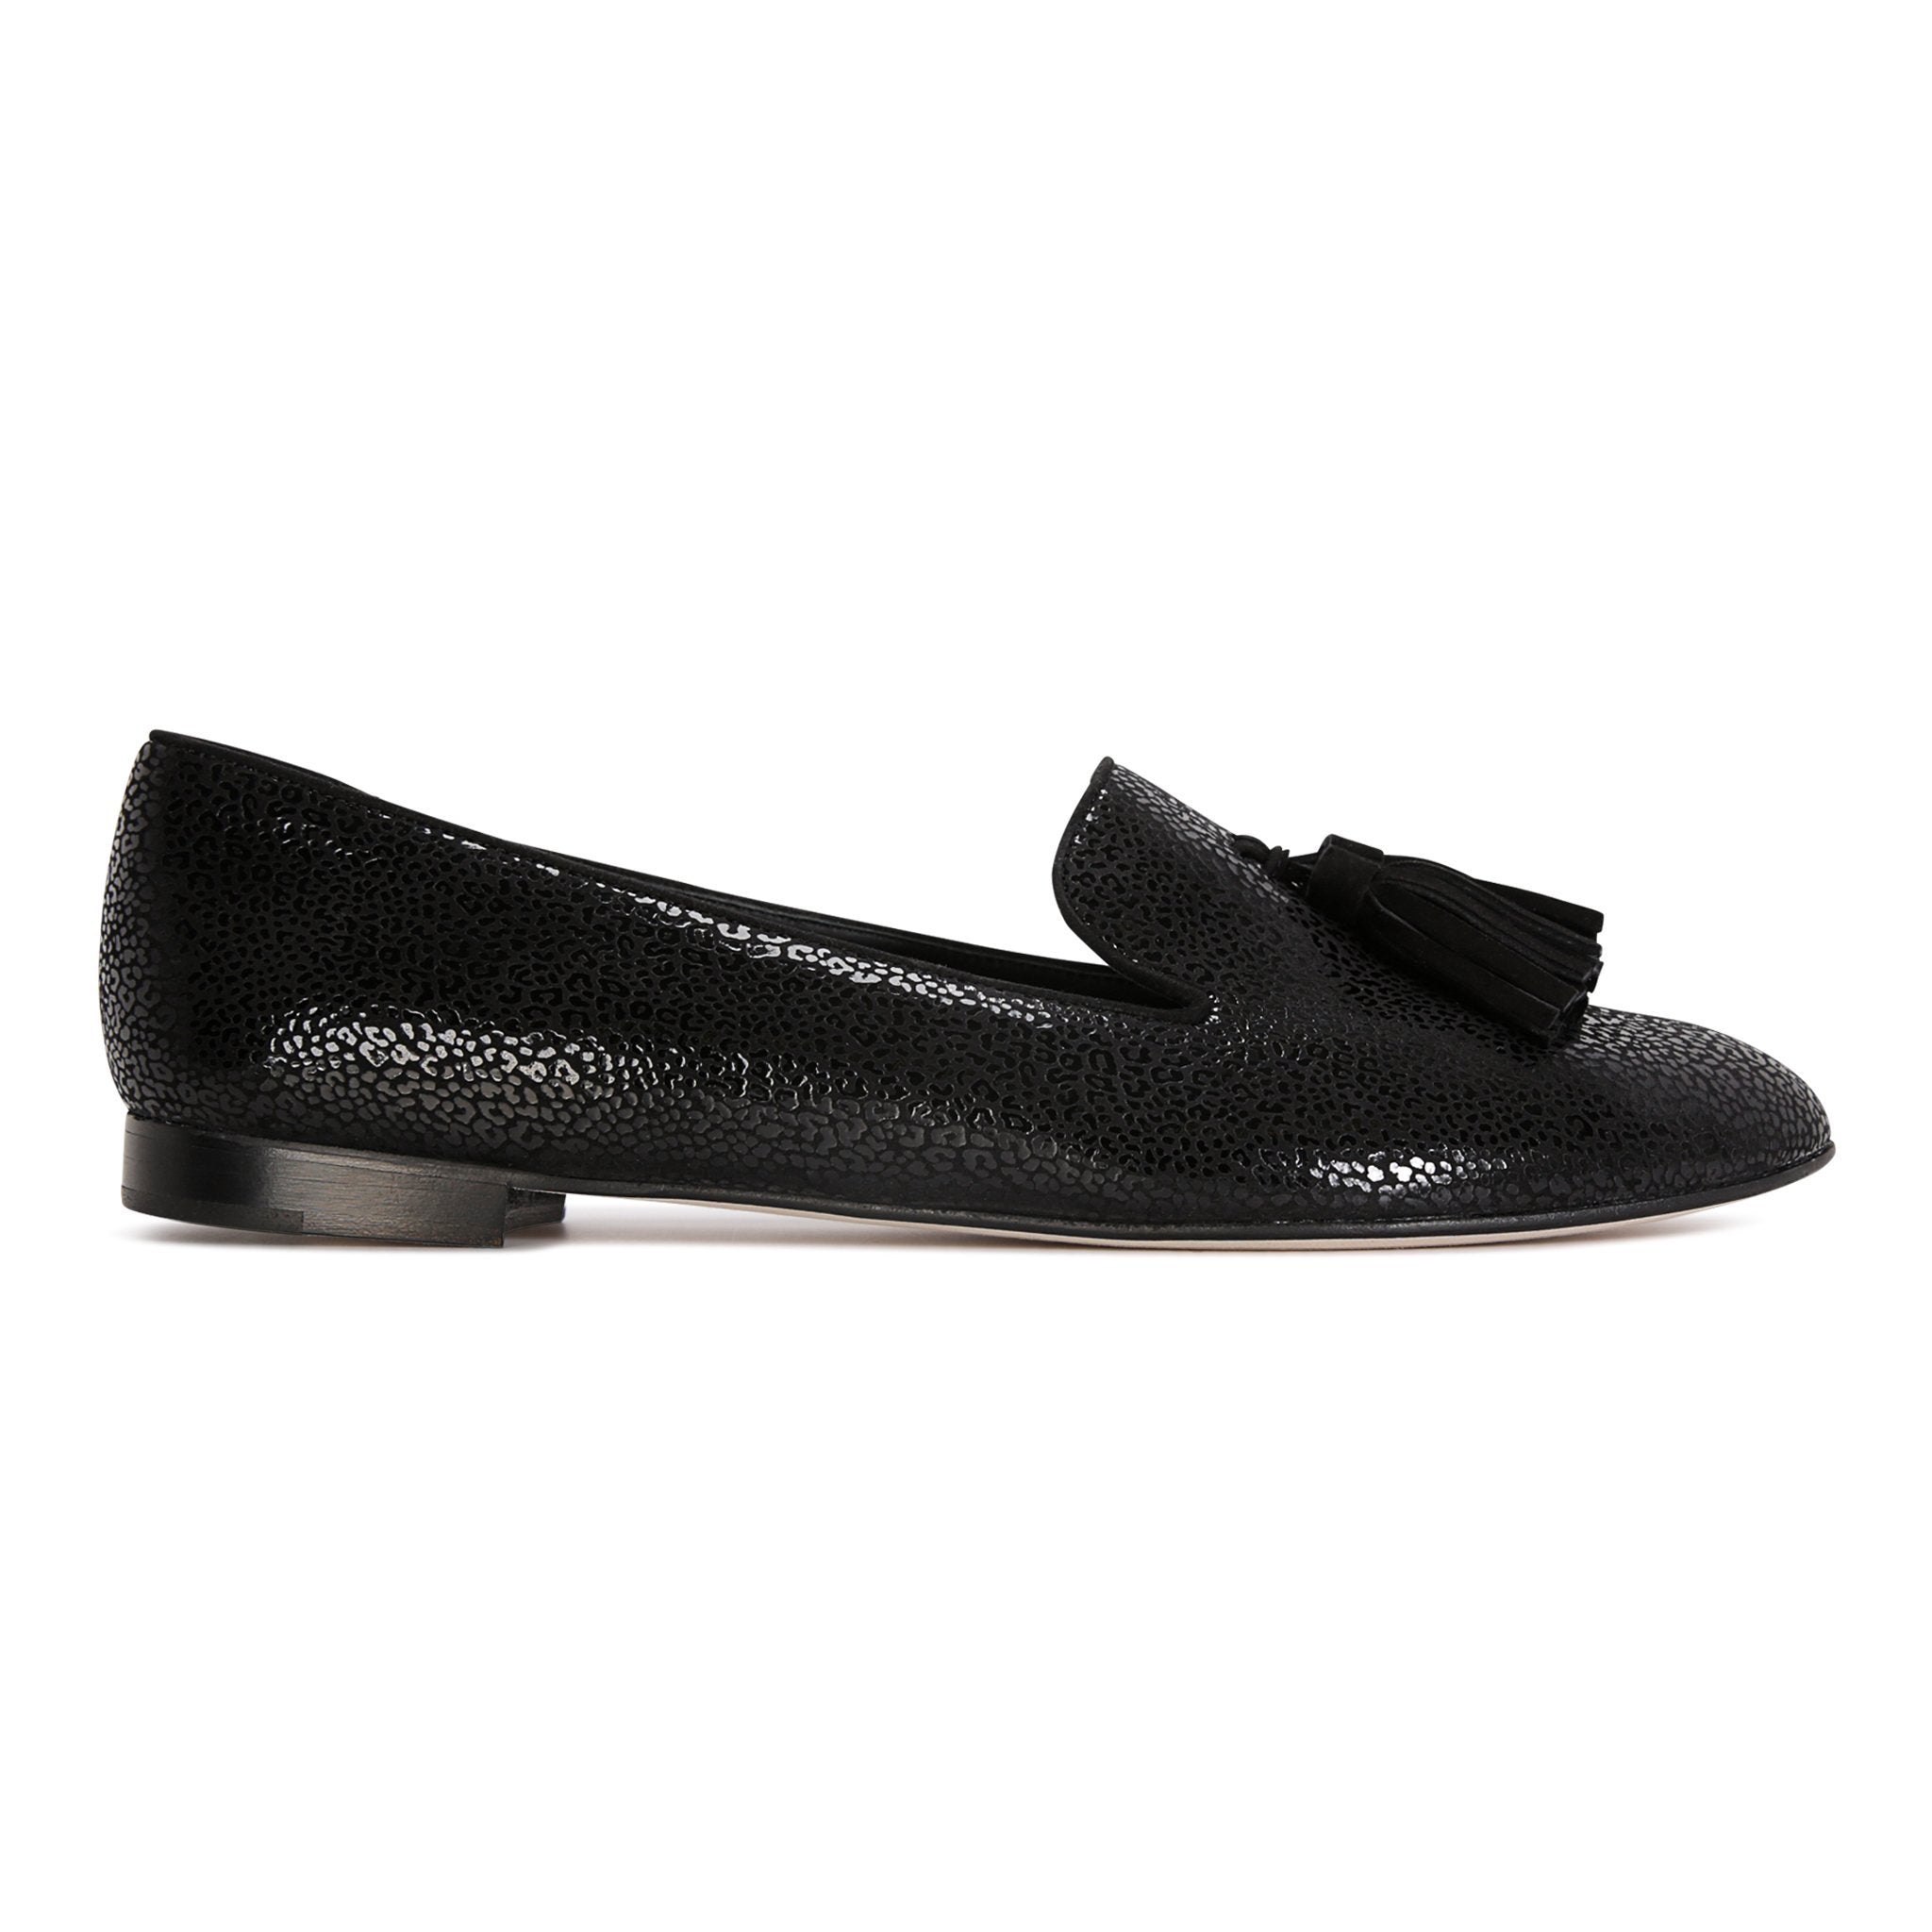 PARMA - Savannah + Velukid Nero, VIAJIYU - Women's Hand Made Sustainable Luxury Shoes. Made in Italy. Made to Order.